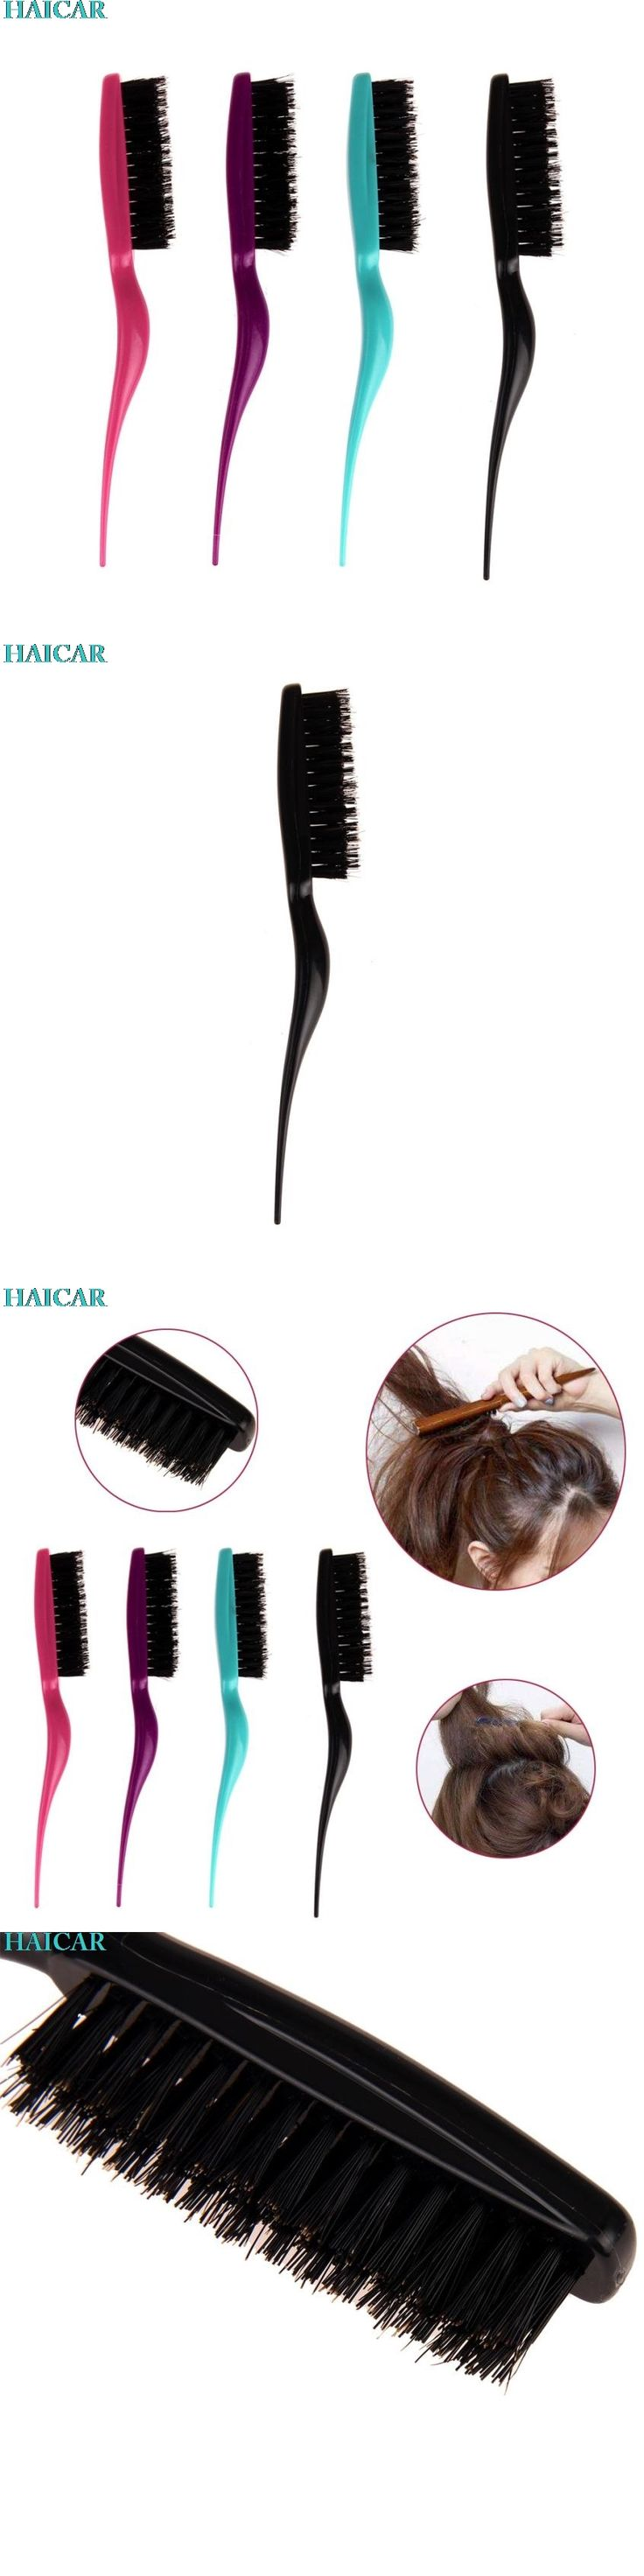 1PC Plastic Modeling Comb Fight Combs Brush Plate Hair Salon Supplies Hair Styling Tool Levert Dropship mar10